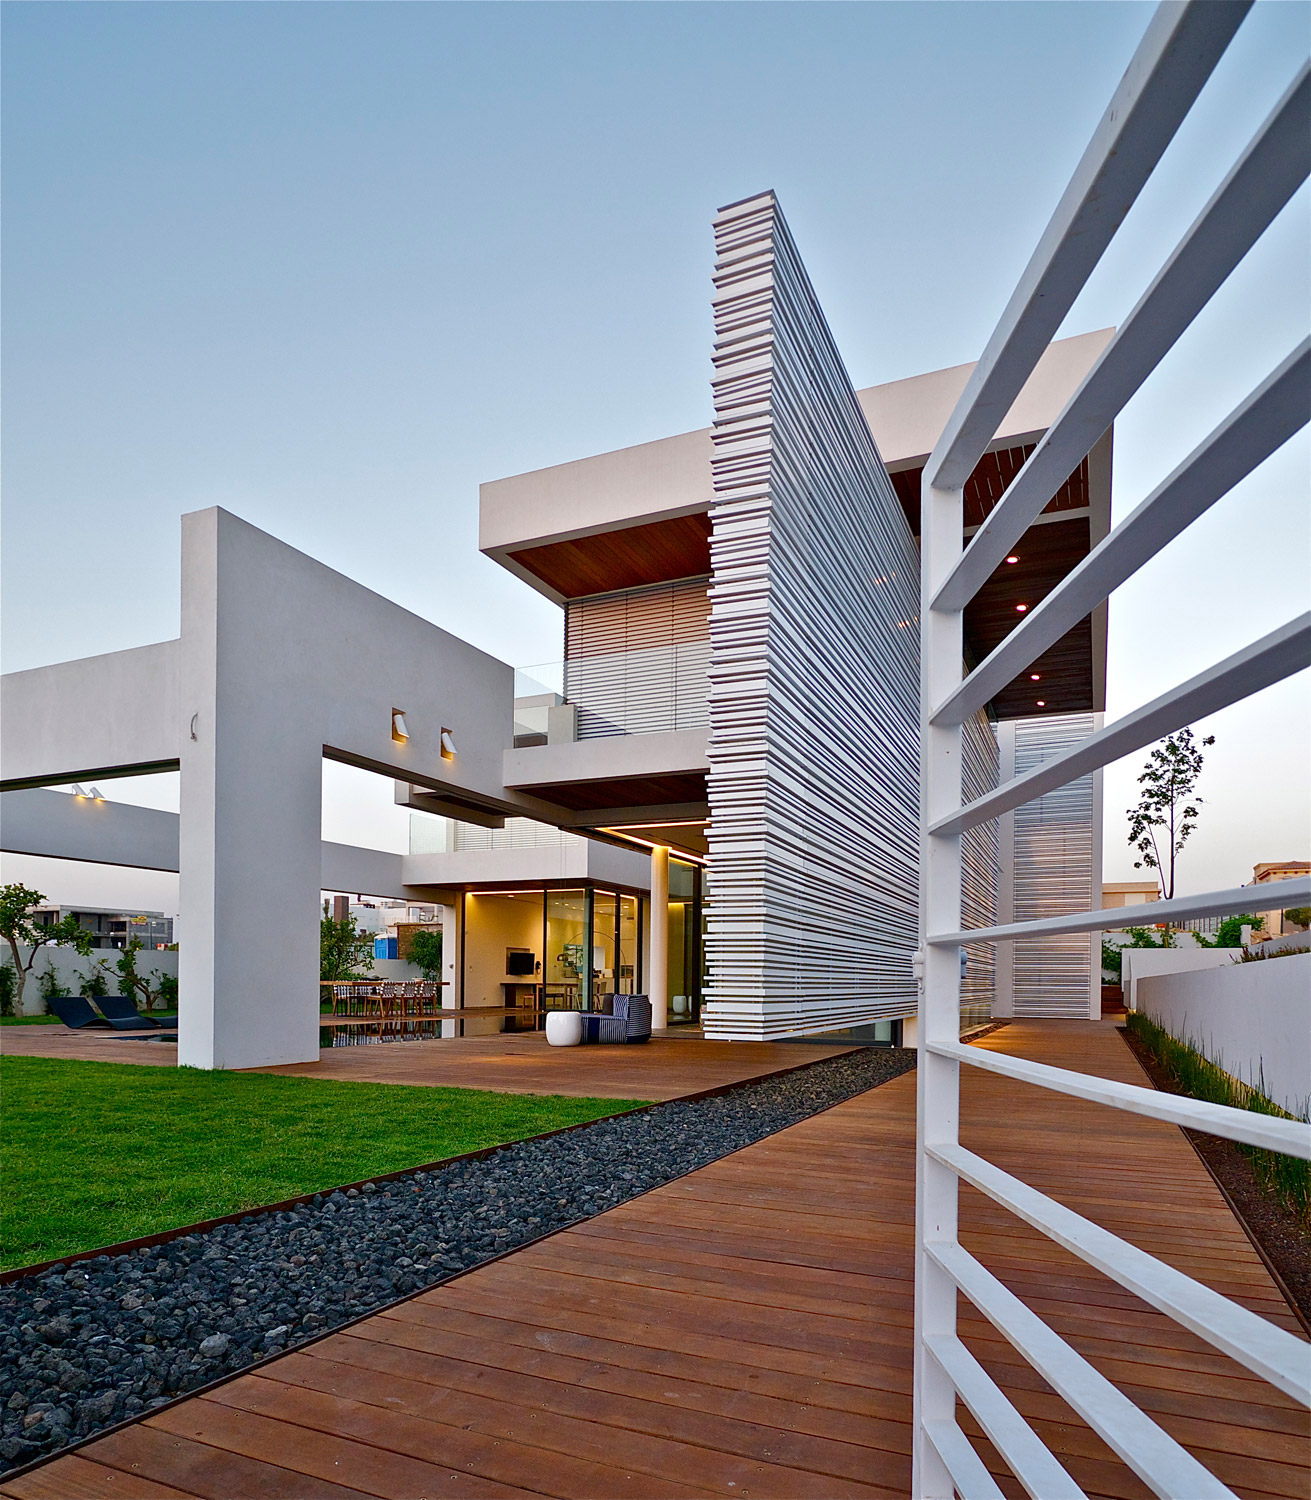 Modern luxury villas designed by gal marom architects for Villas modernes architecture